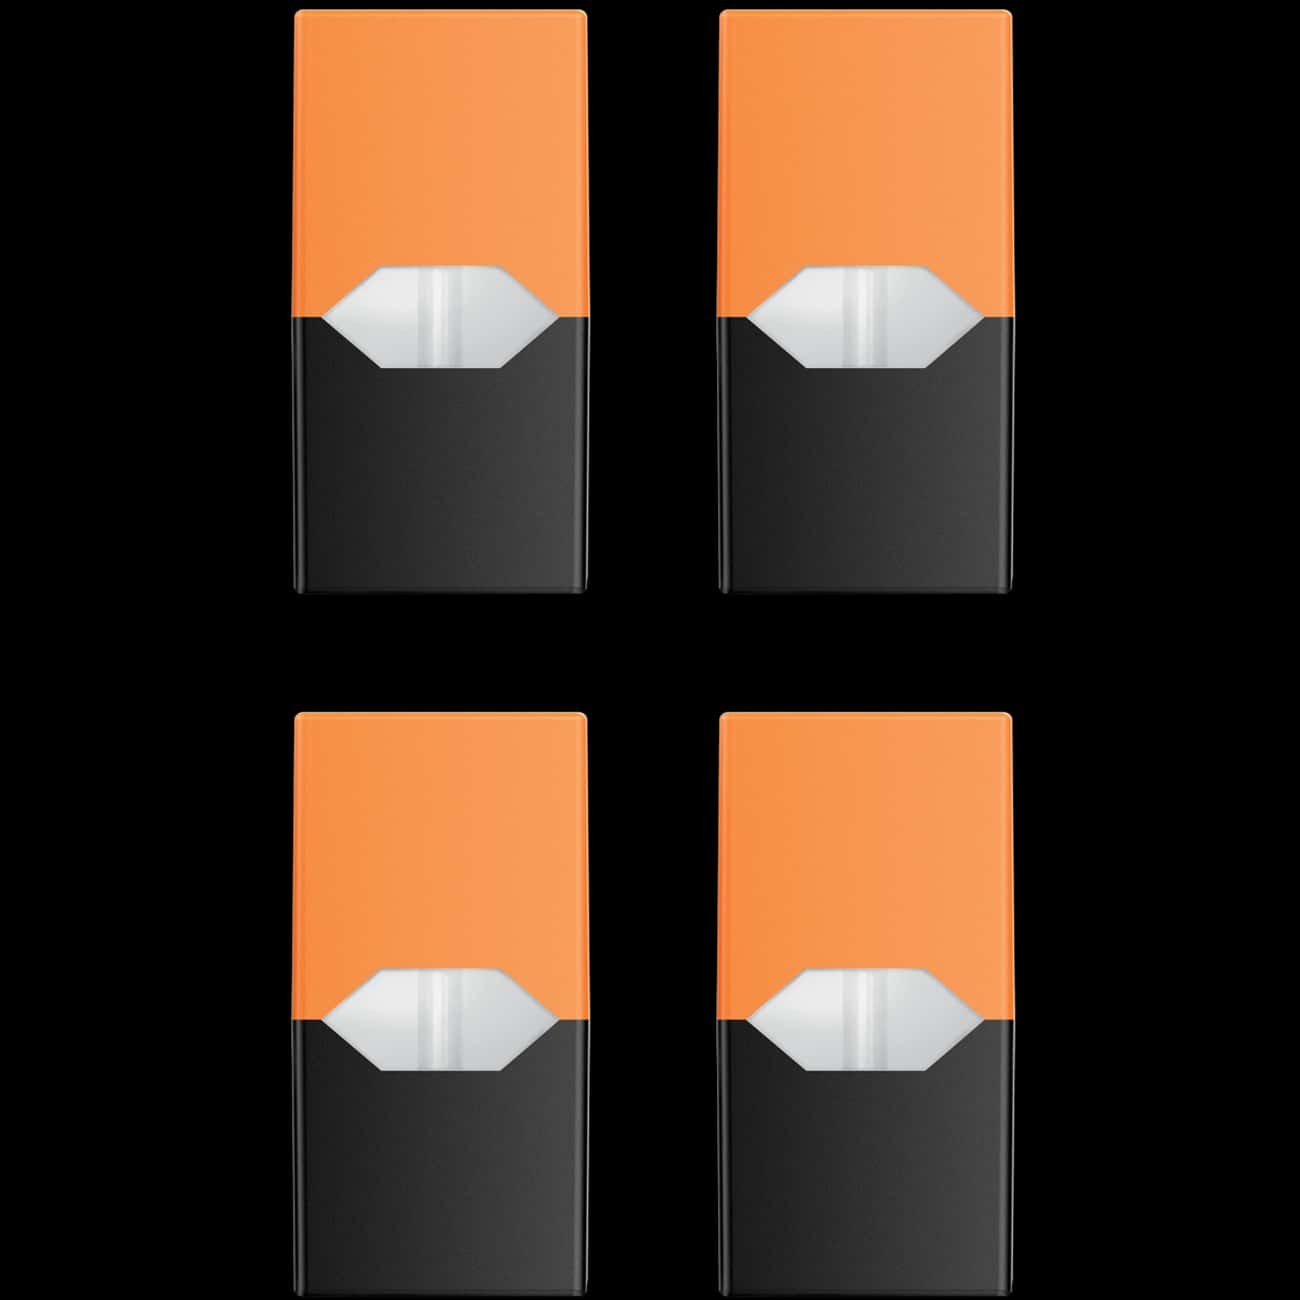 Mango  is listed (or ranked) 2 on the list The Best JUUL Pod Flavors